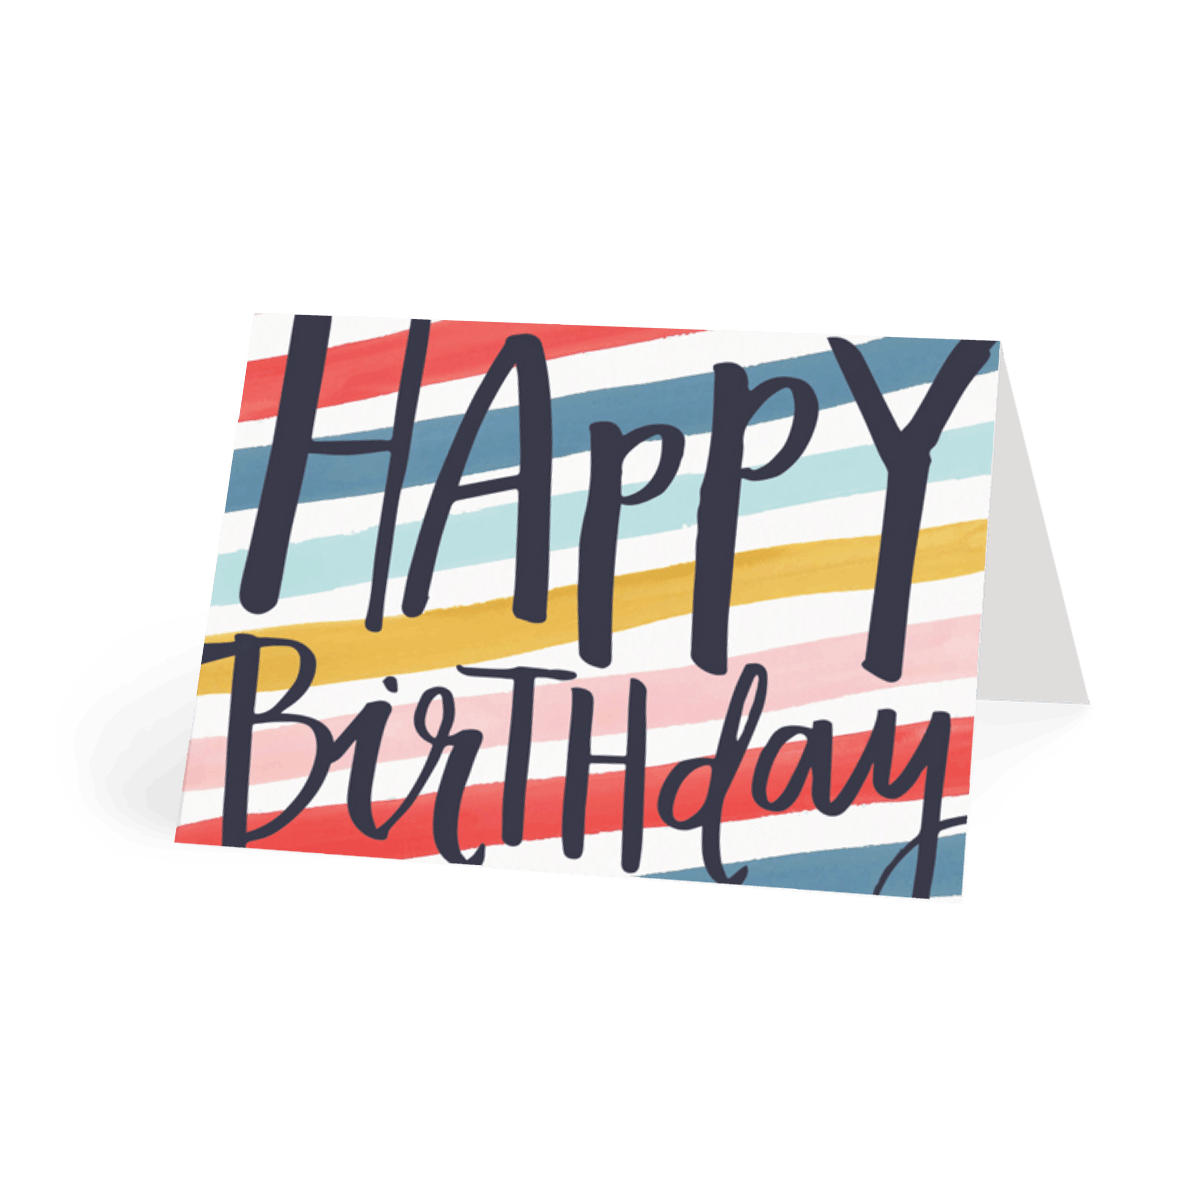 Https%3a%2f%2fwww.papier.com%2fproduct image%2f53527%2f14%2fbirthday stripes 12881 front 1542023483.png?ixlib=rb 1.1